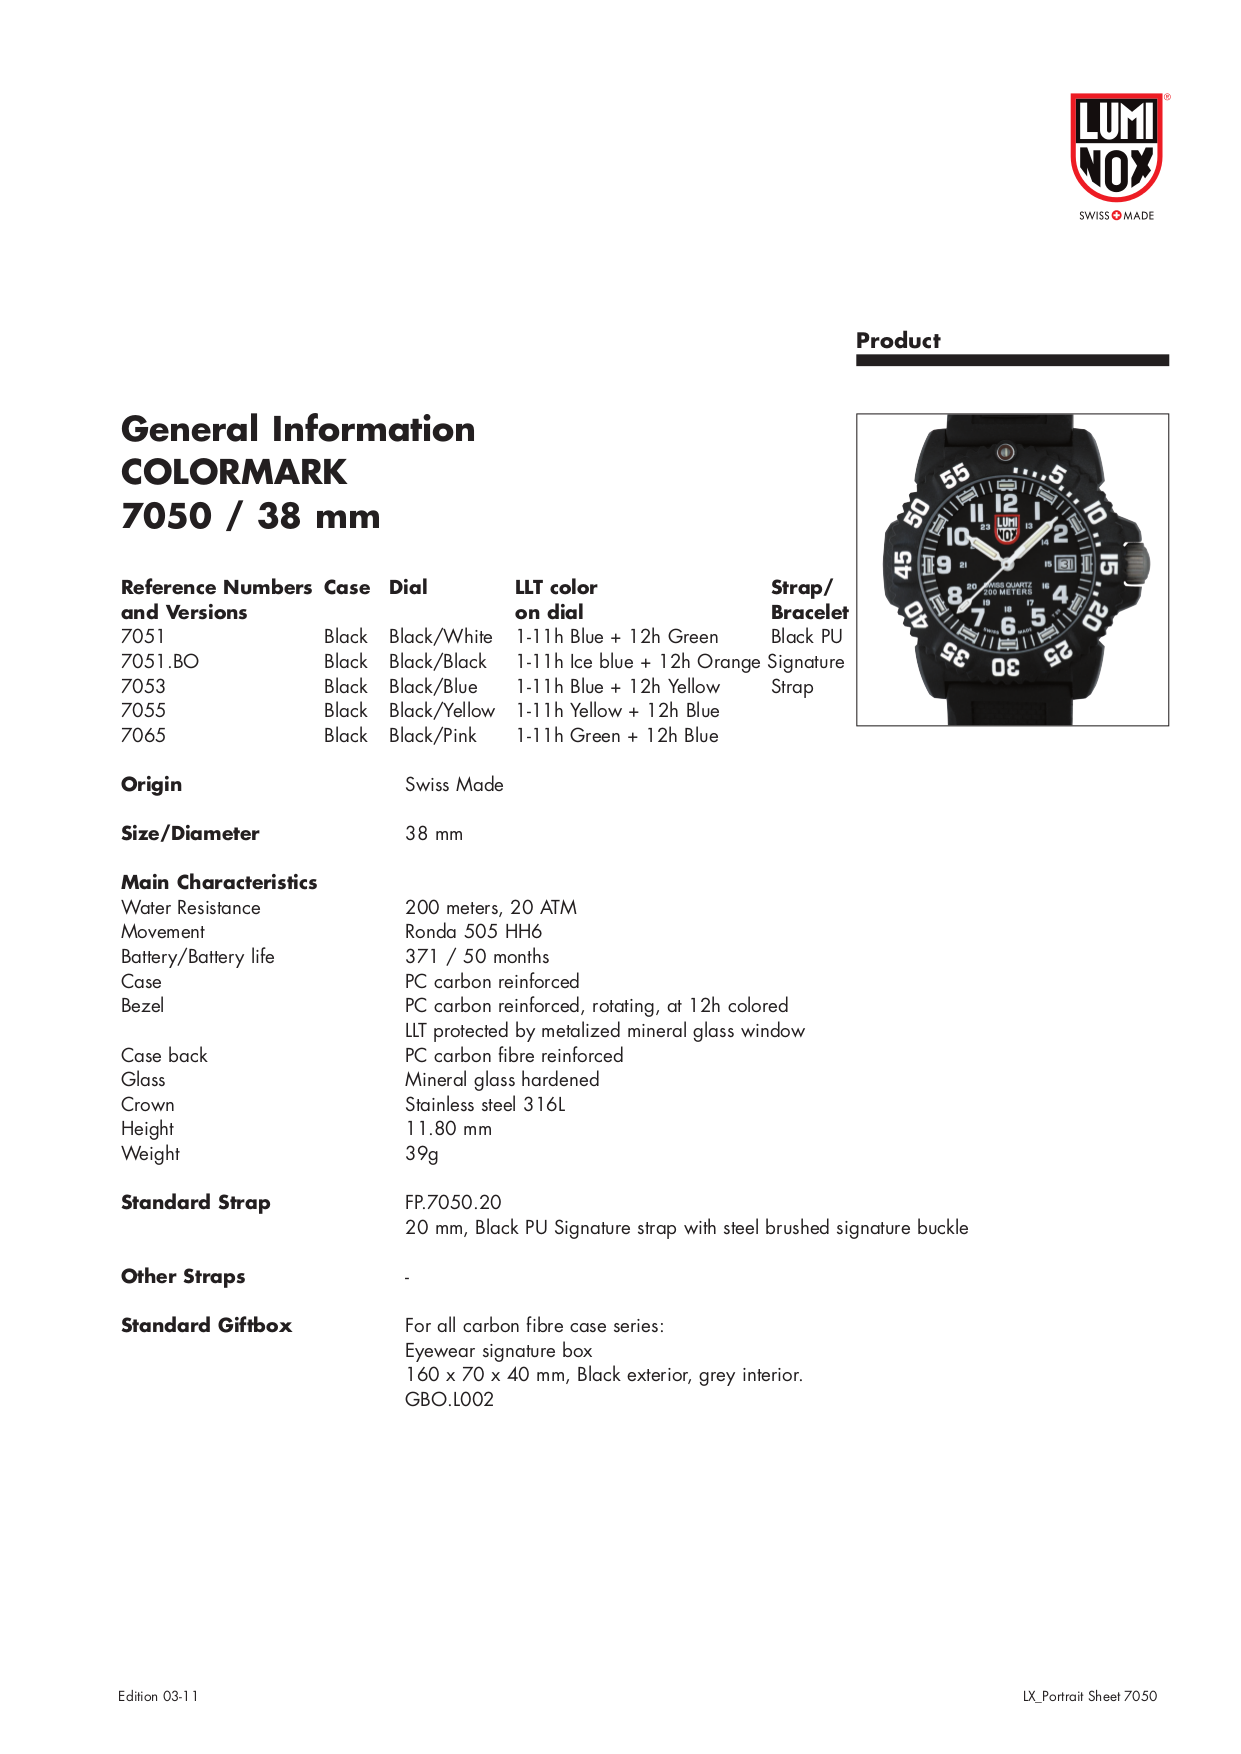 pdf for Luminox Watch 7055 manual